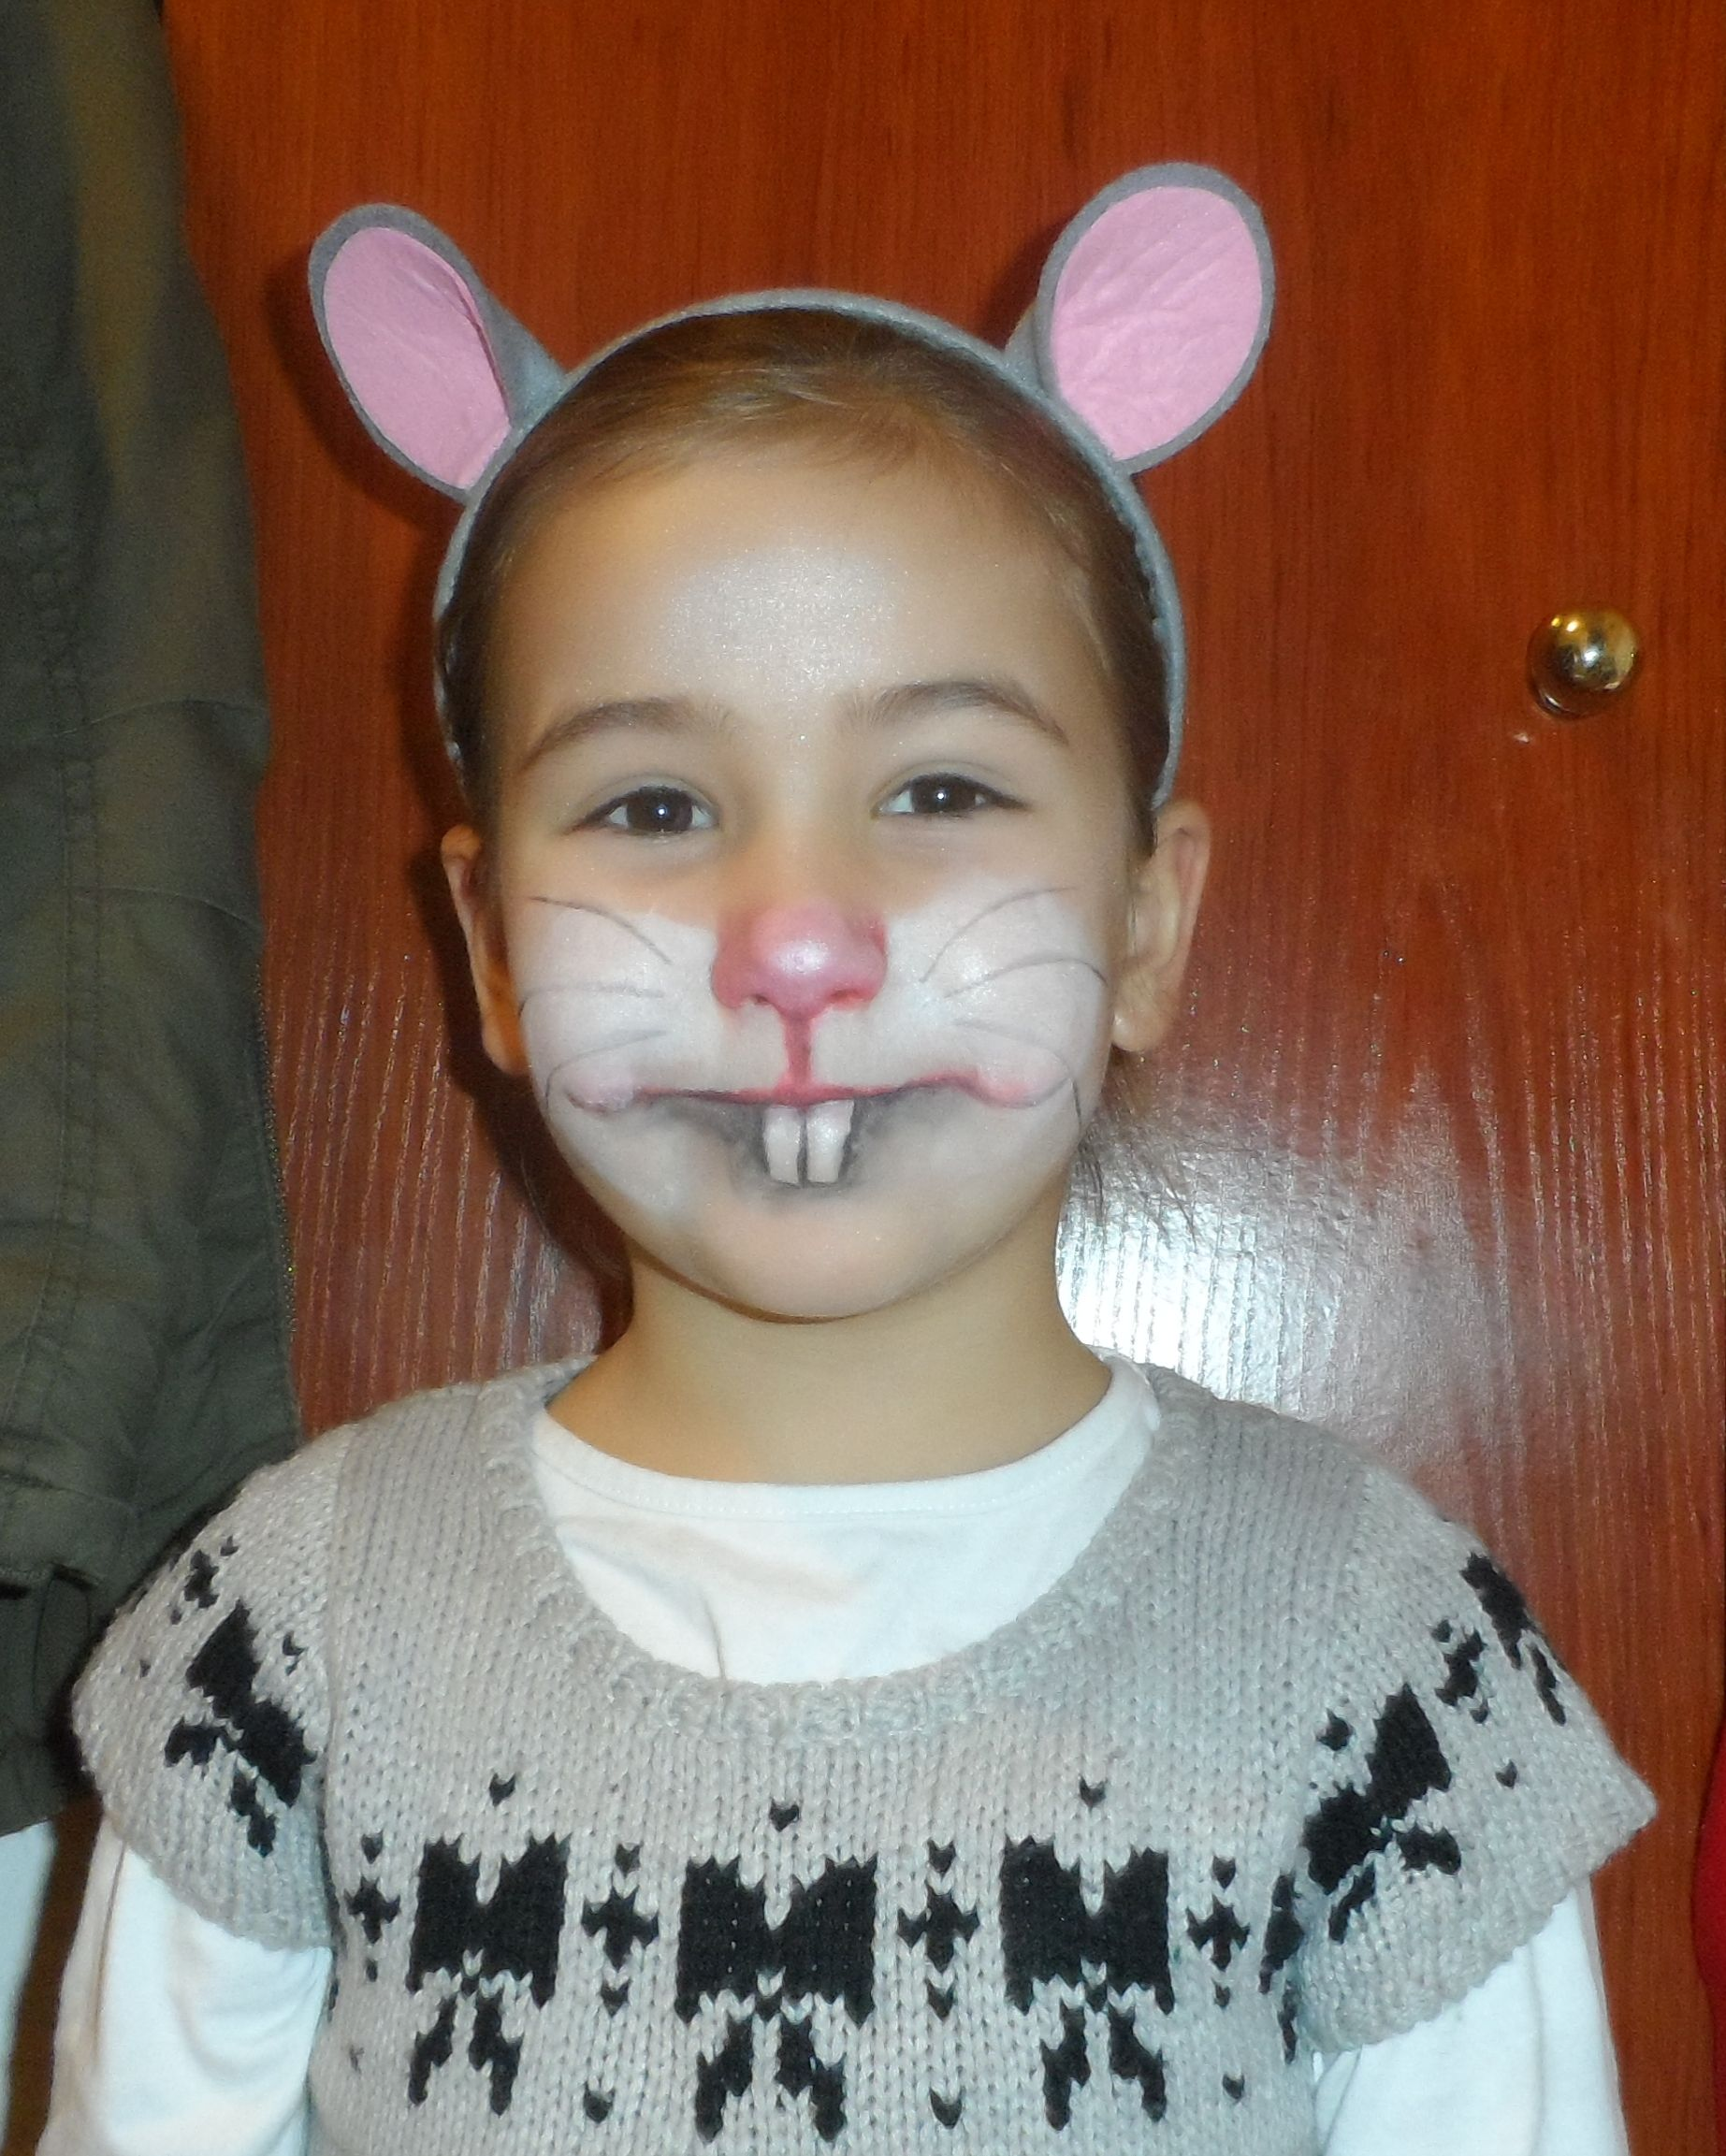 Mouse Face Paint : mouse, paint, Mouse, Paint, Ears., Image, Only,, Painting, Halloween,, Costume,